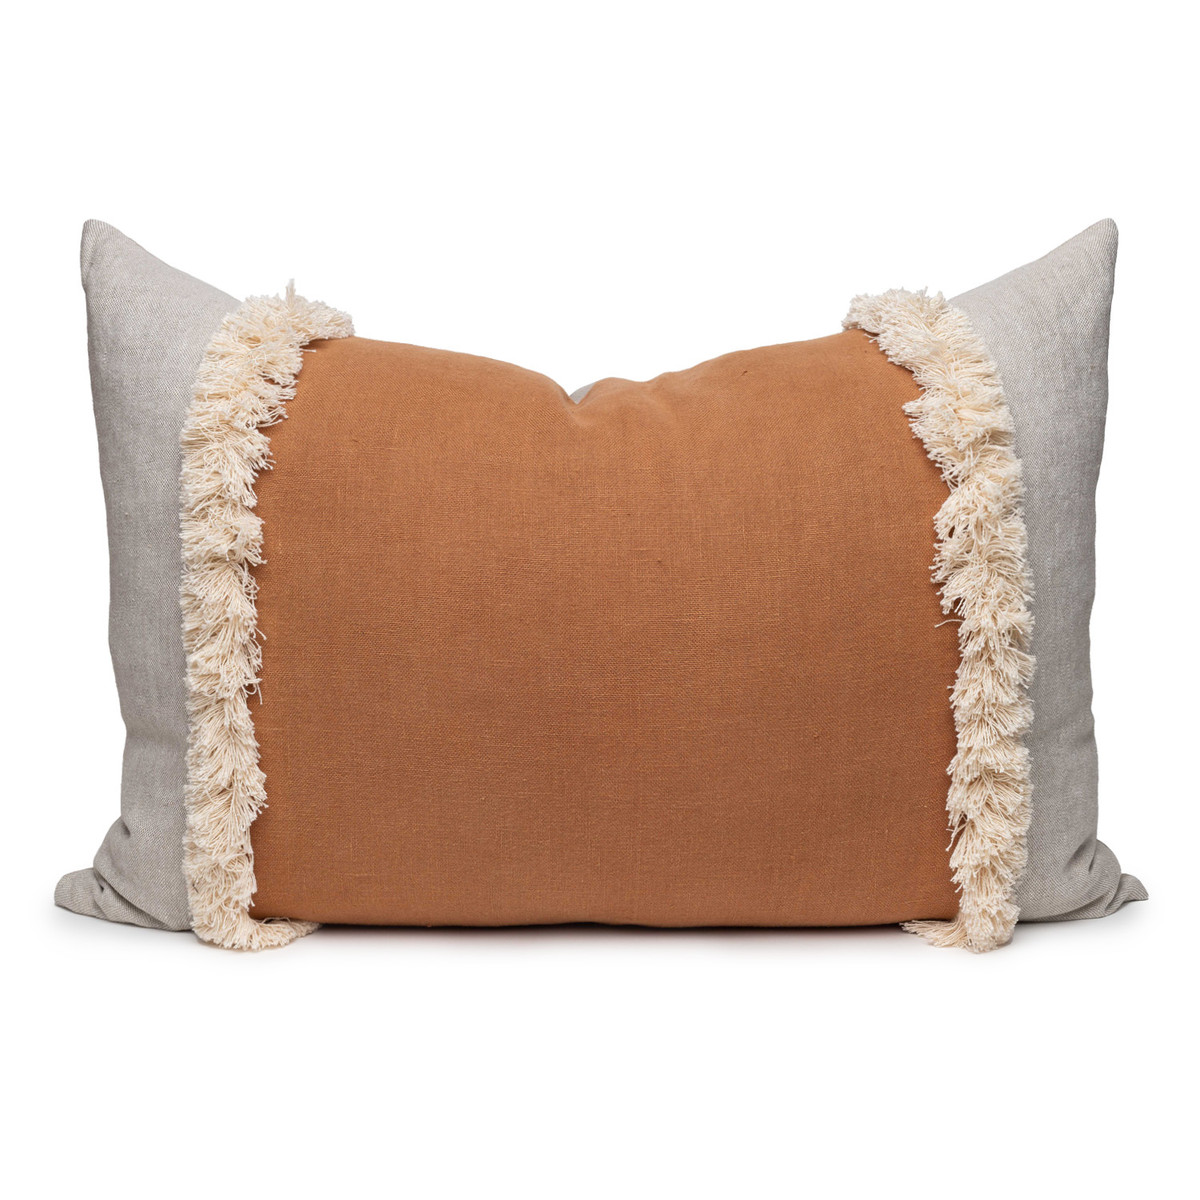 Muse Linen Lumbar Fringe Pillow in Sunstone- 2636- Front View